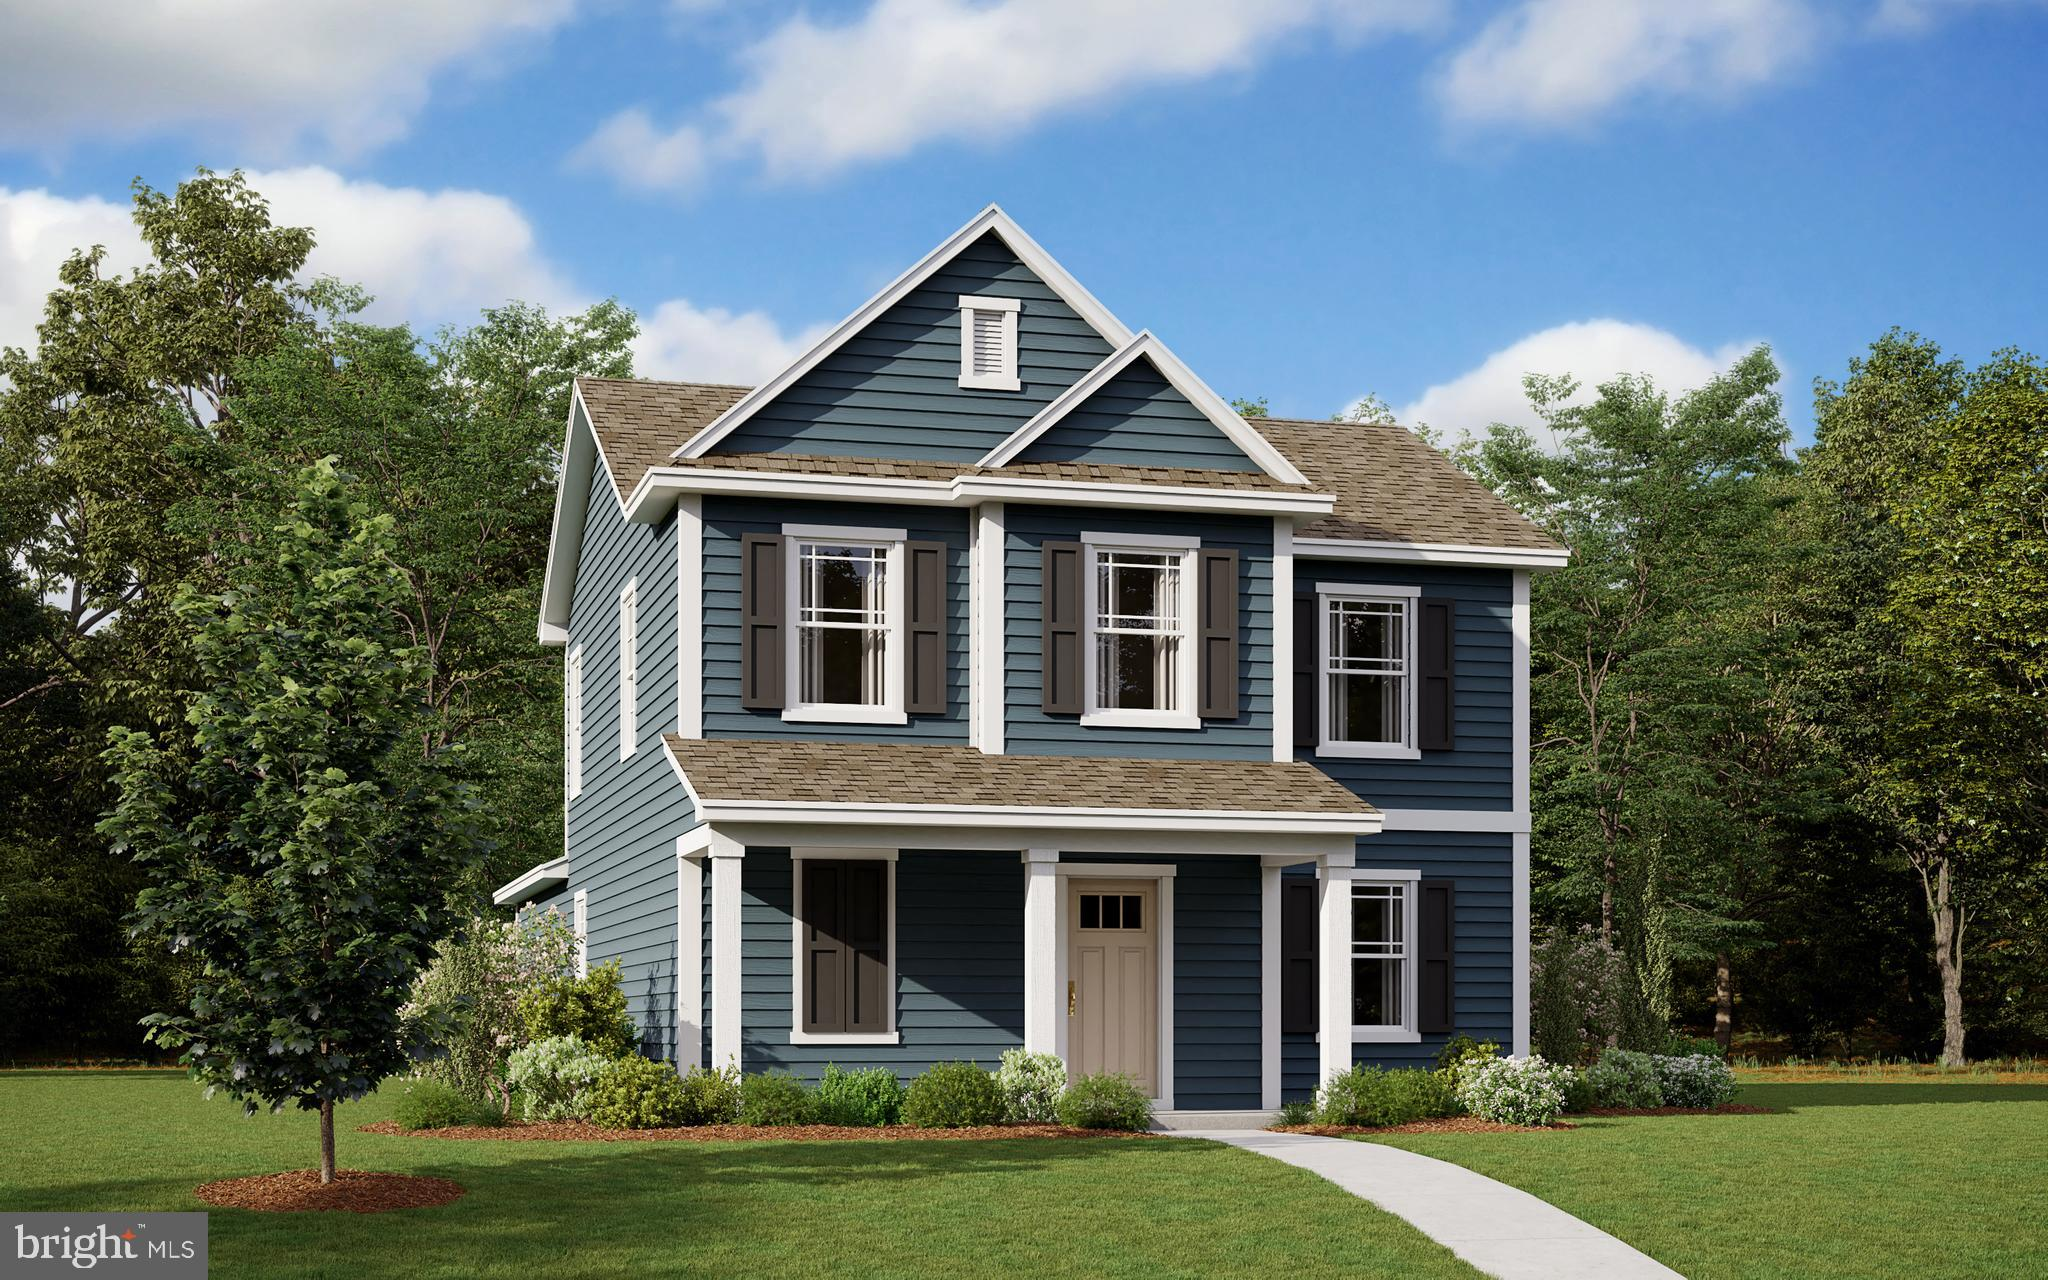 New construction home available in July in the Simpsons Crossing neighborhood in Milford! In the 164